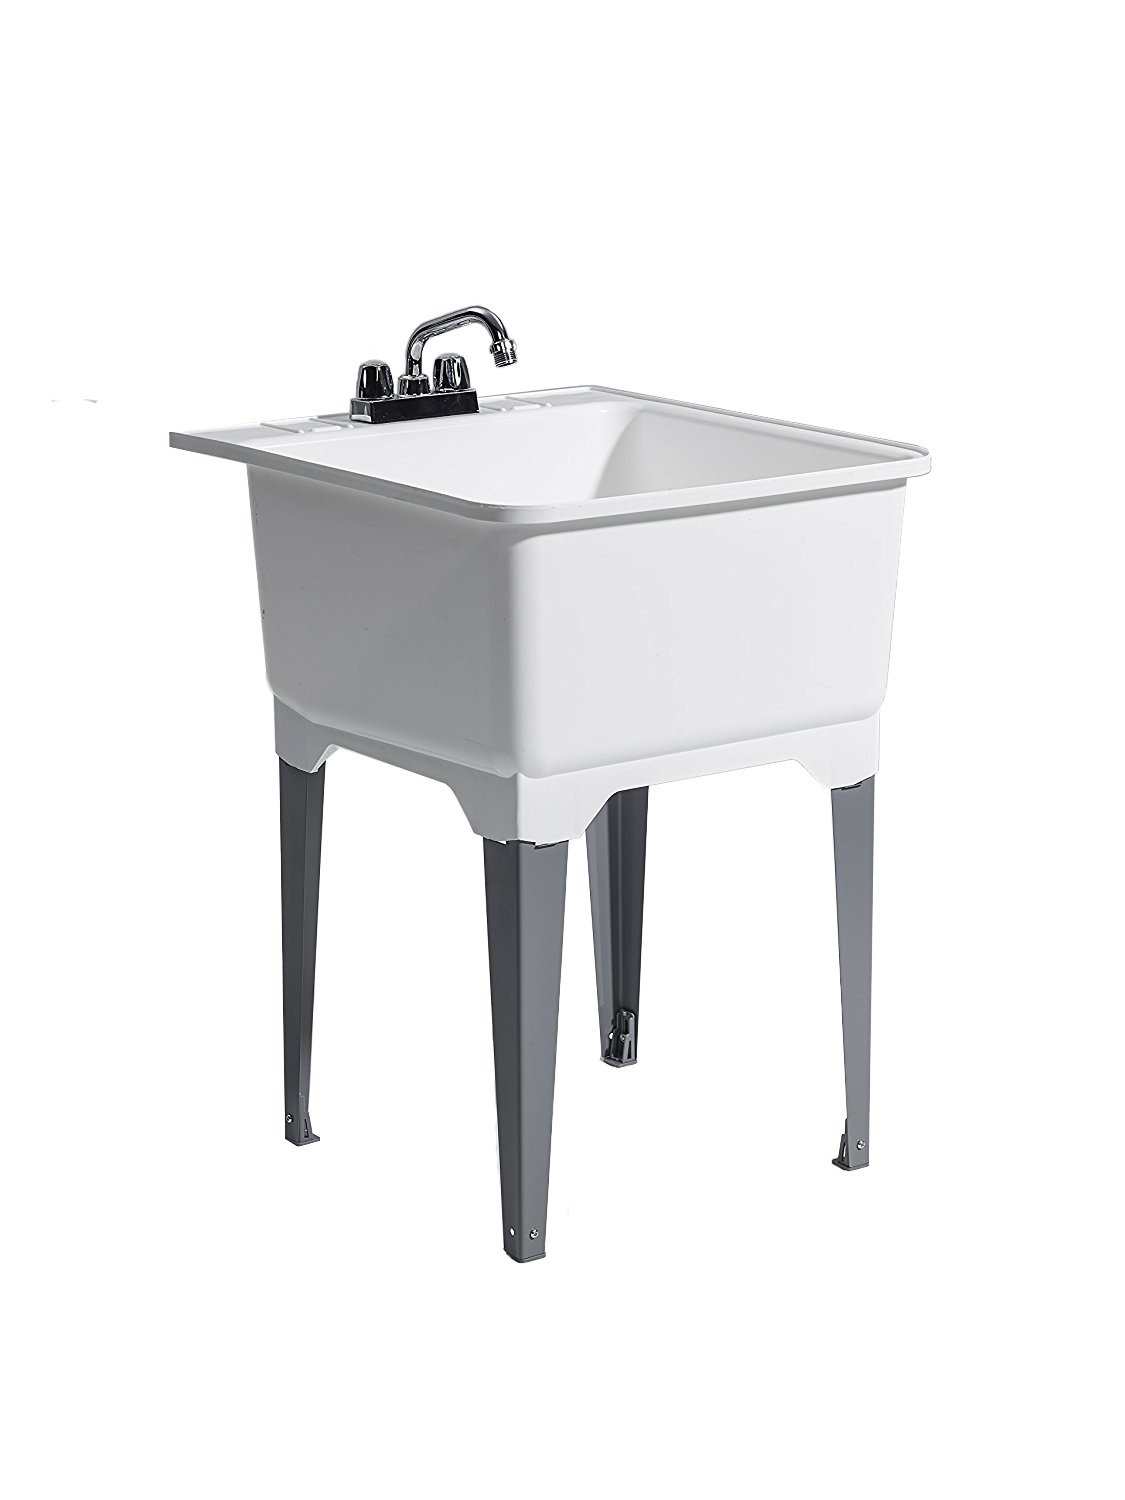 CASHEL 1950-31-11 Standard Utility Sink - Fully Loaded Sink Kit, Steel Leg, White by Cashel